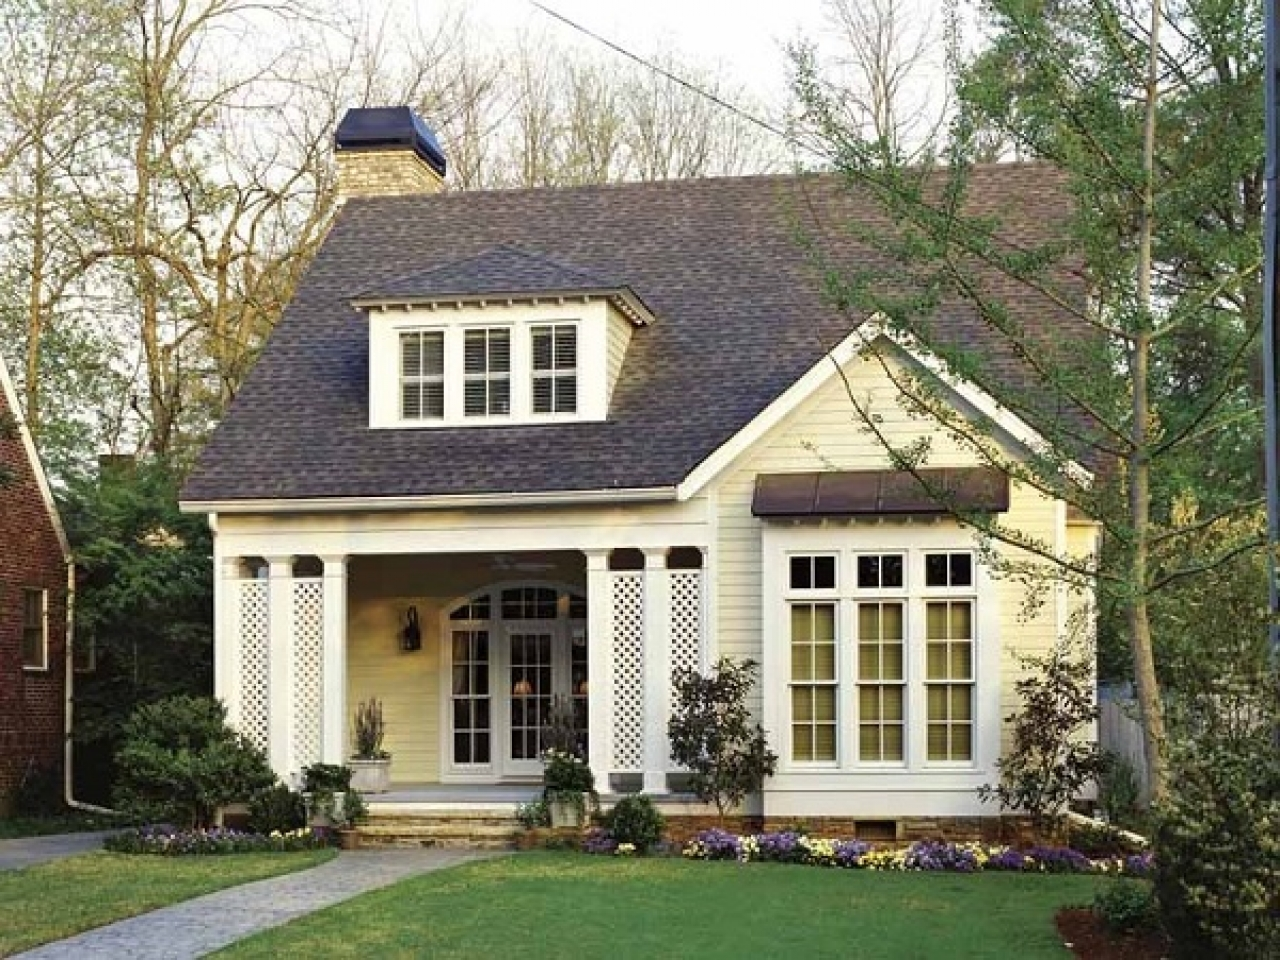 Small cottage house plans small country house plans small Tiny little house plans